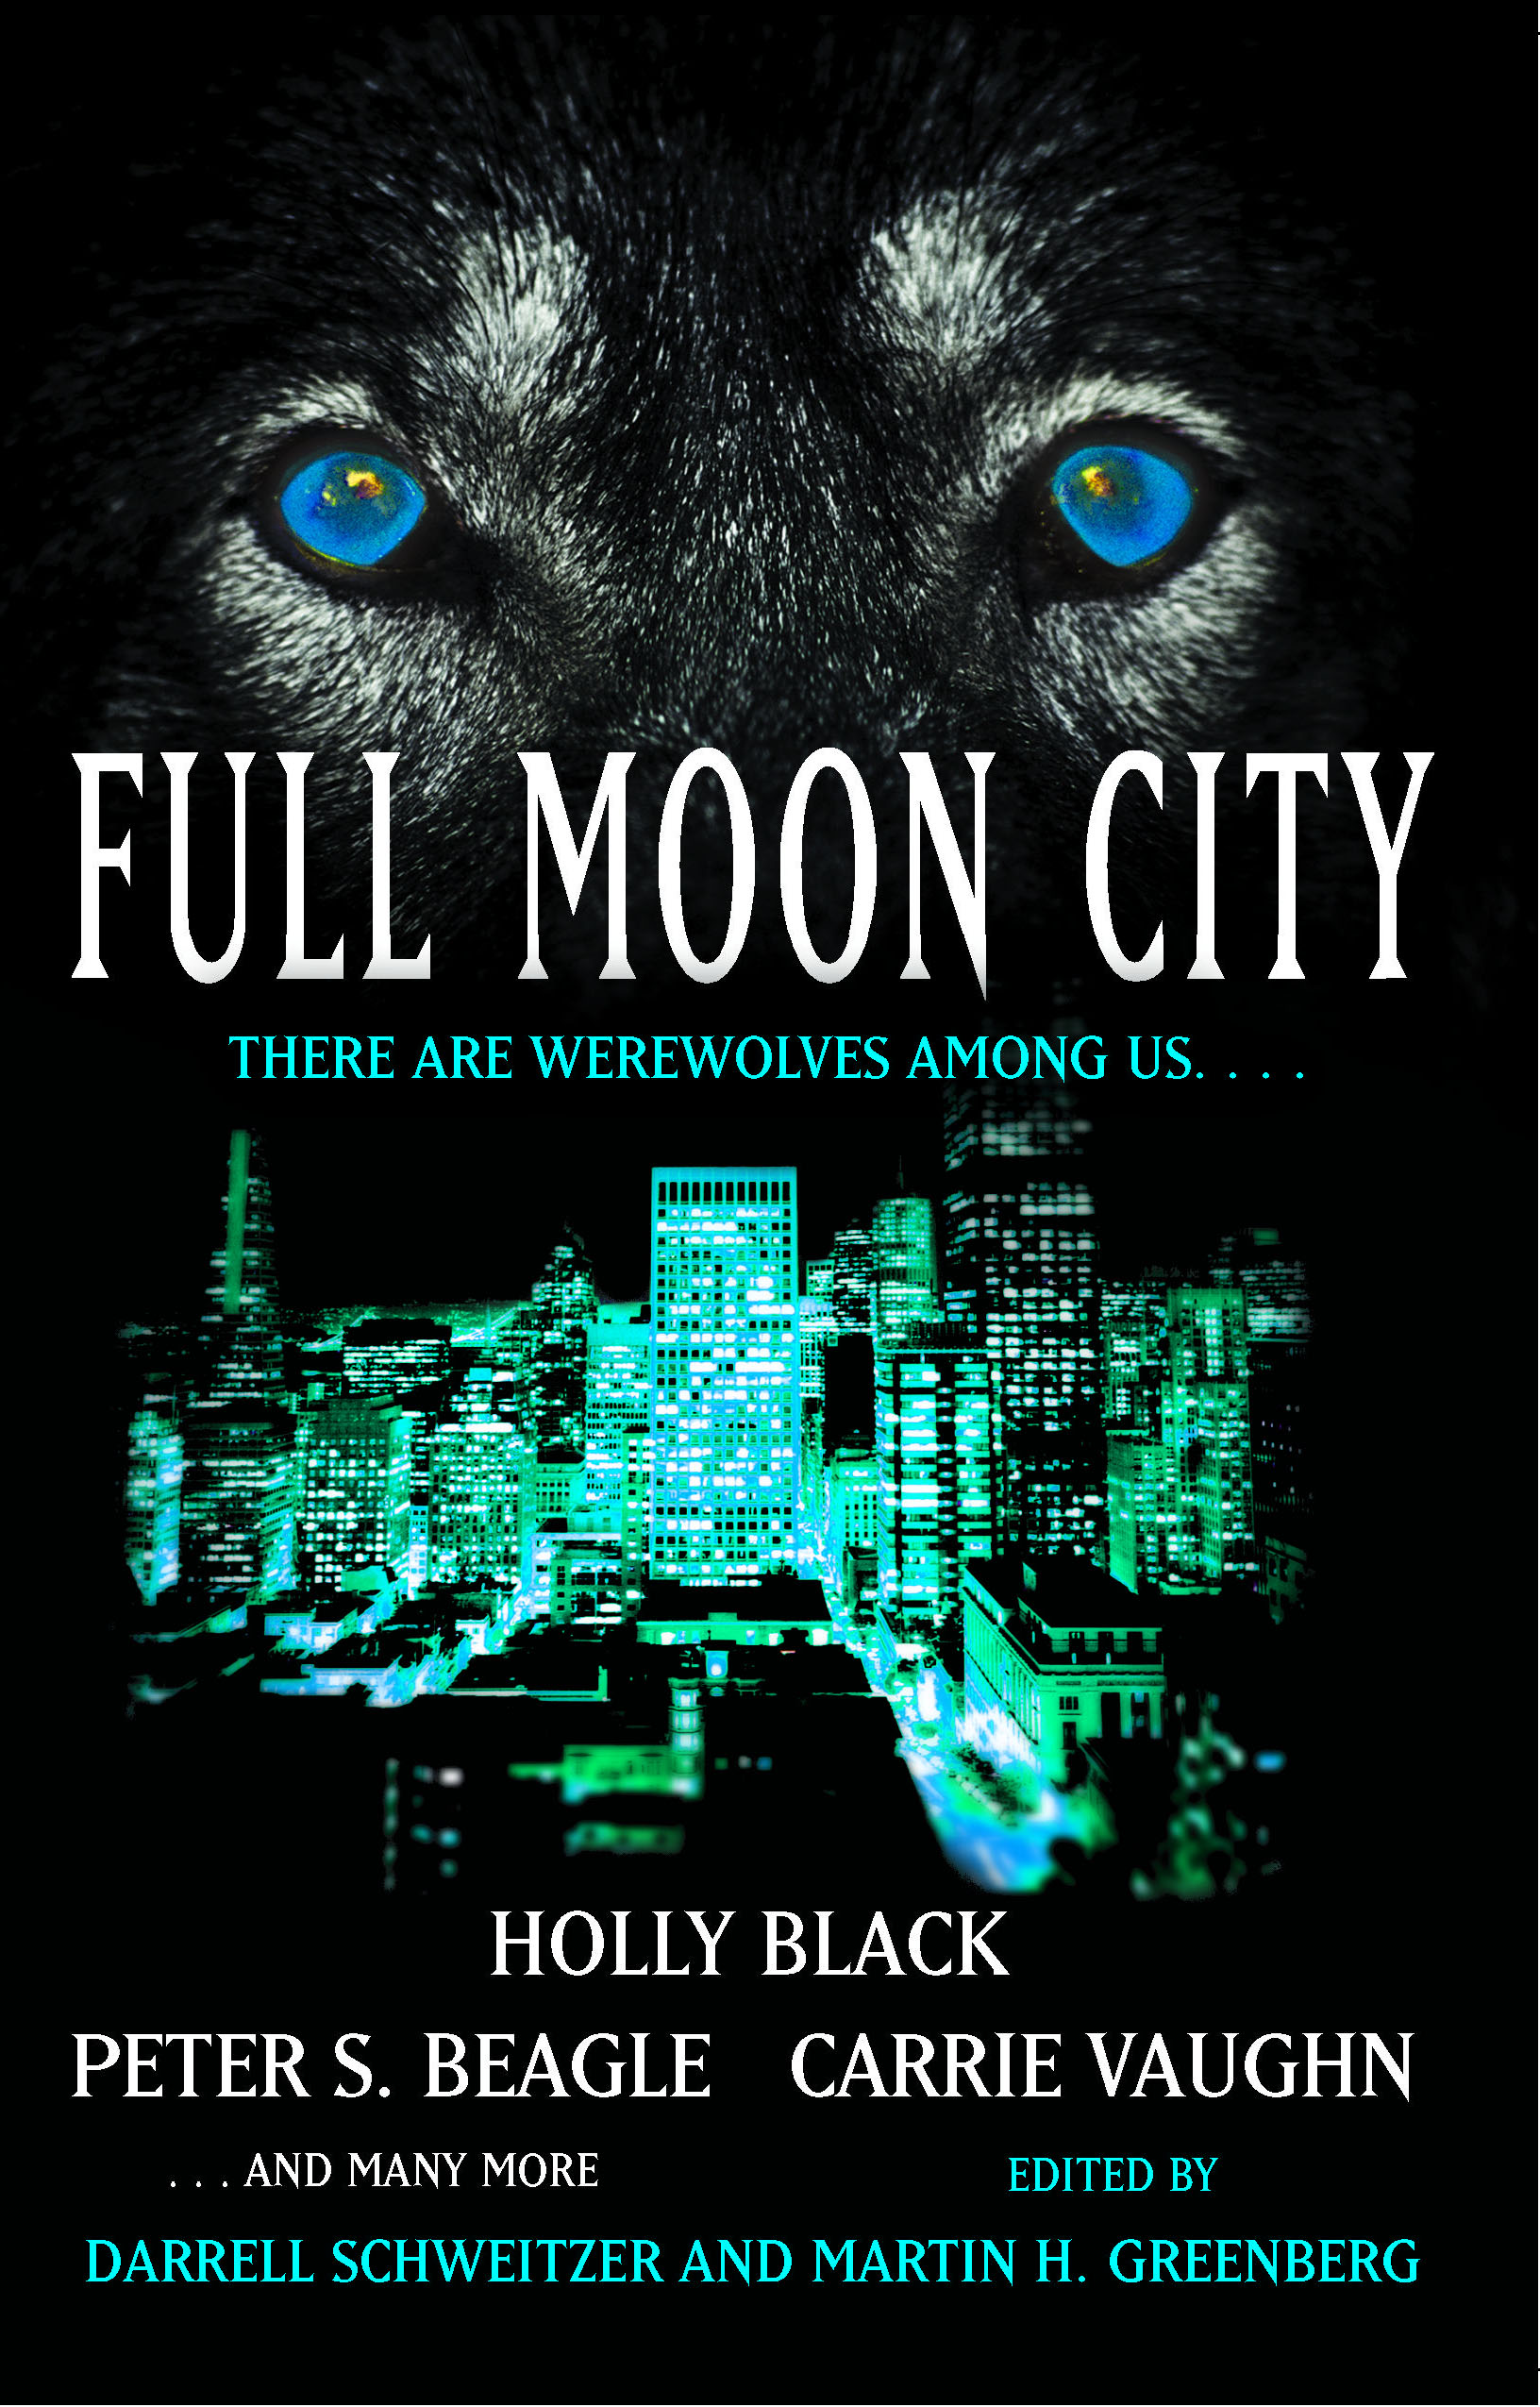 Image result for full moon city book cover